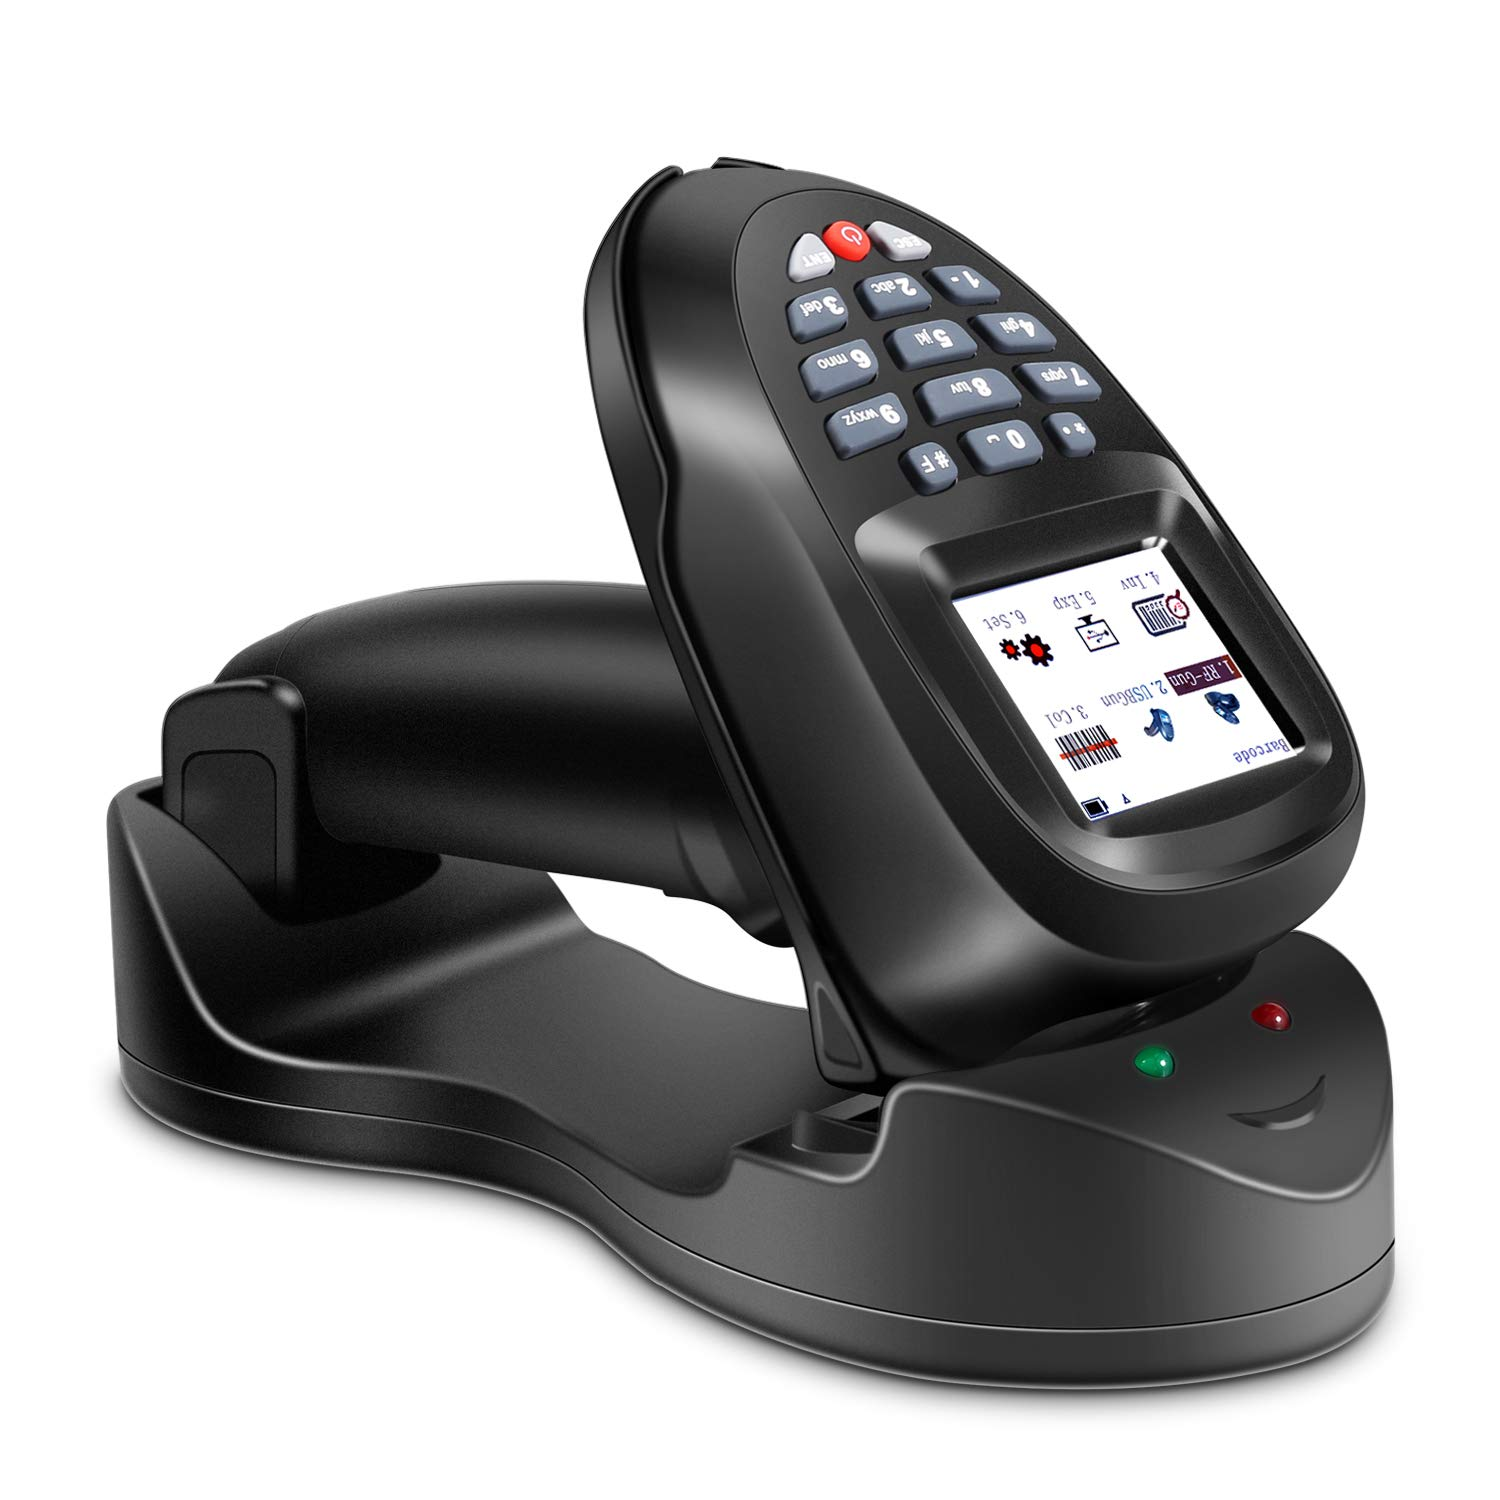 TroheStar Barcode Scanner 1D/2D/QR/PDF417 Wireless and Collector Portable Data Terminal Inventory Device Bar Code Reader PDT with TFT Color LCD Screen & USB Cradle Receiver Charging Base